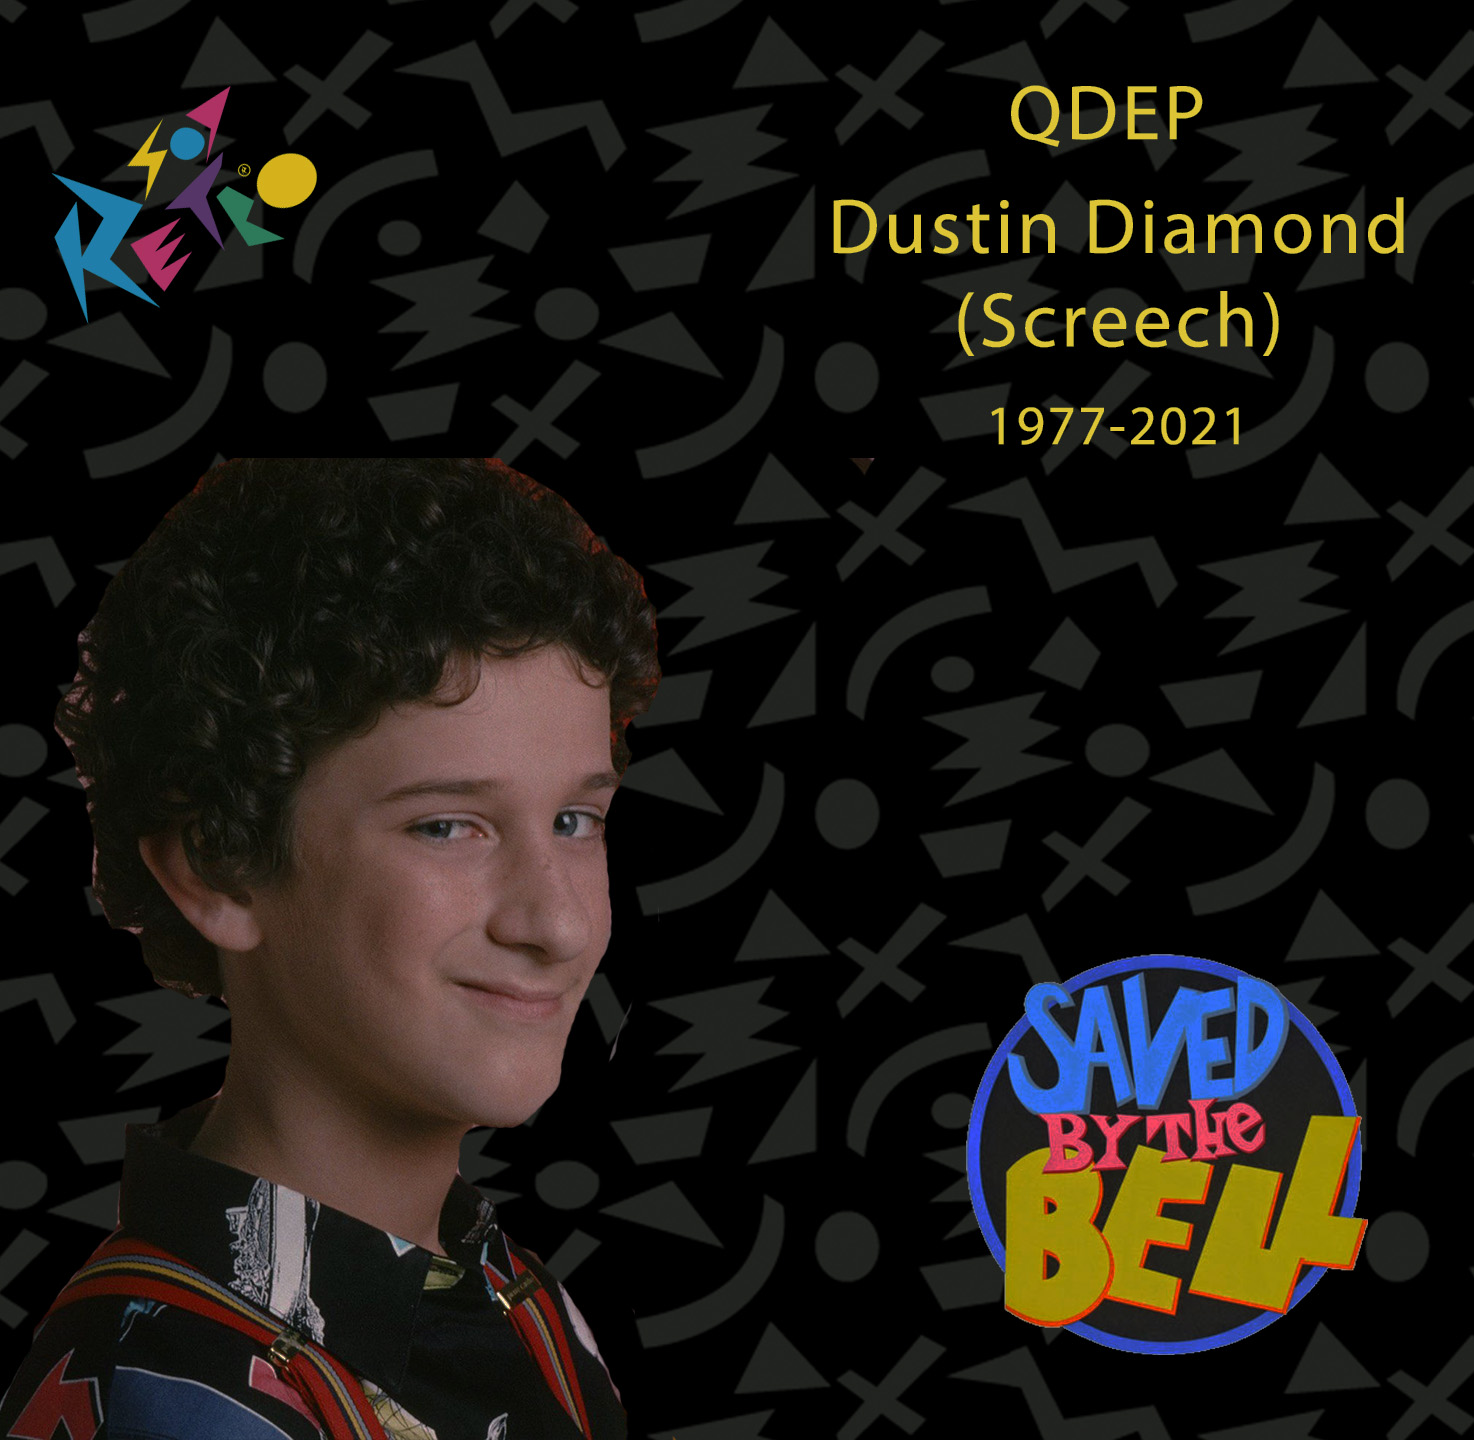 Dustin Diamond, Screech de Salvados por la campana, falleció de cancer esta mañana